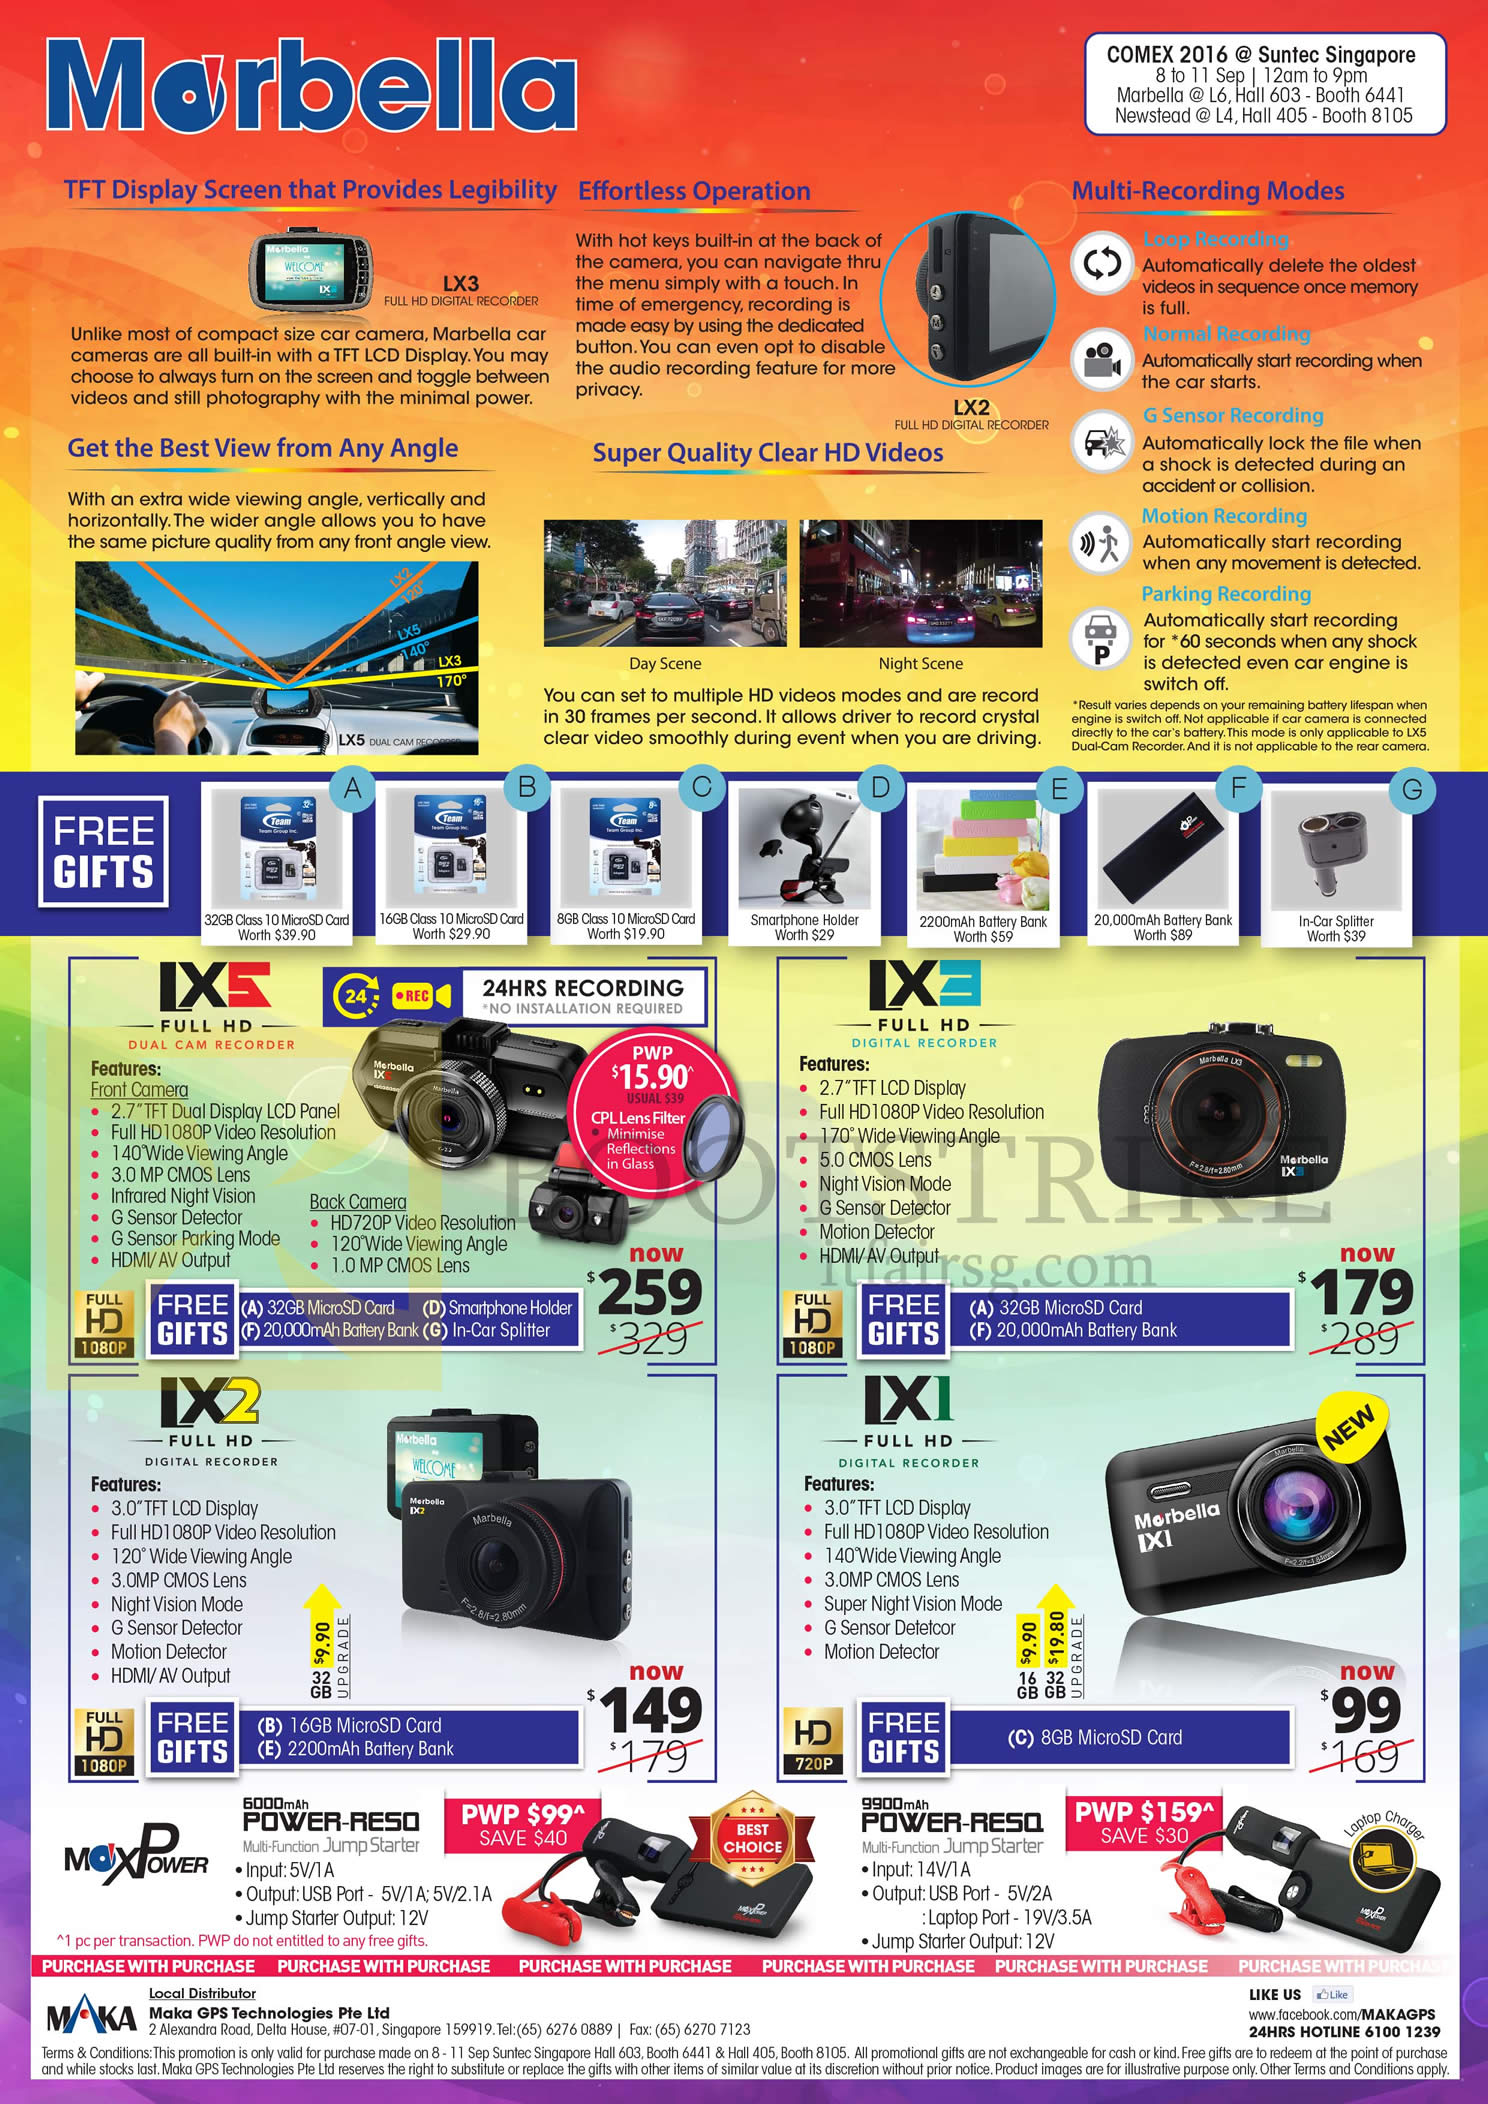 COMEX 2016 price list image brochure of Maka GPS Marbella Car Digital Cam Recorders LX3, LX5, LX2, LX1, Power RE50